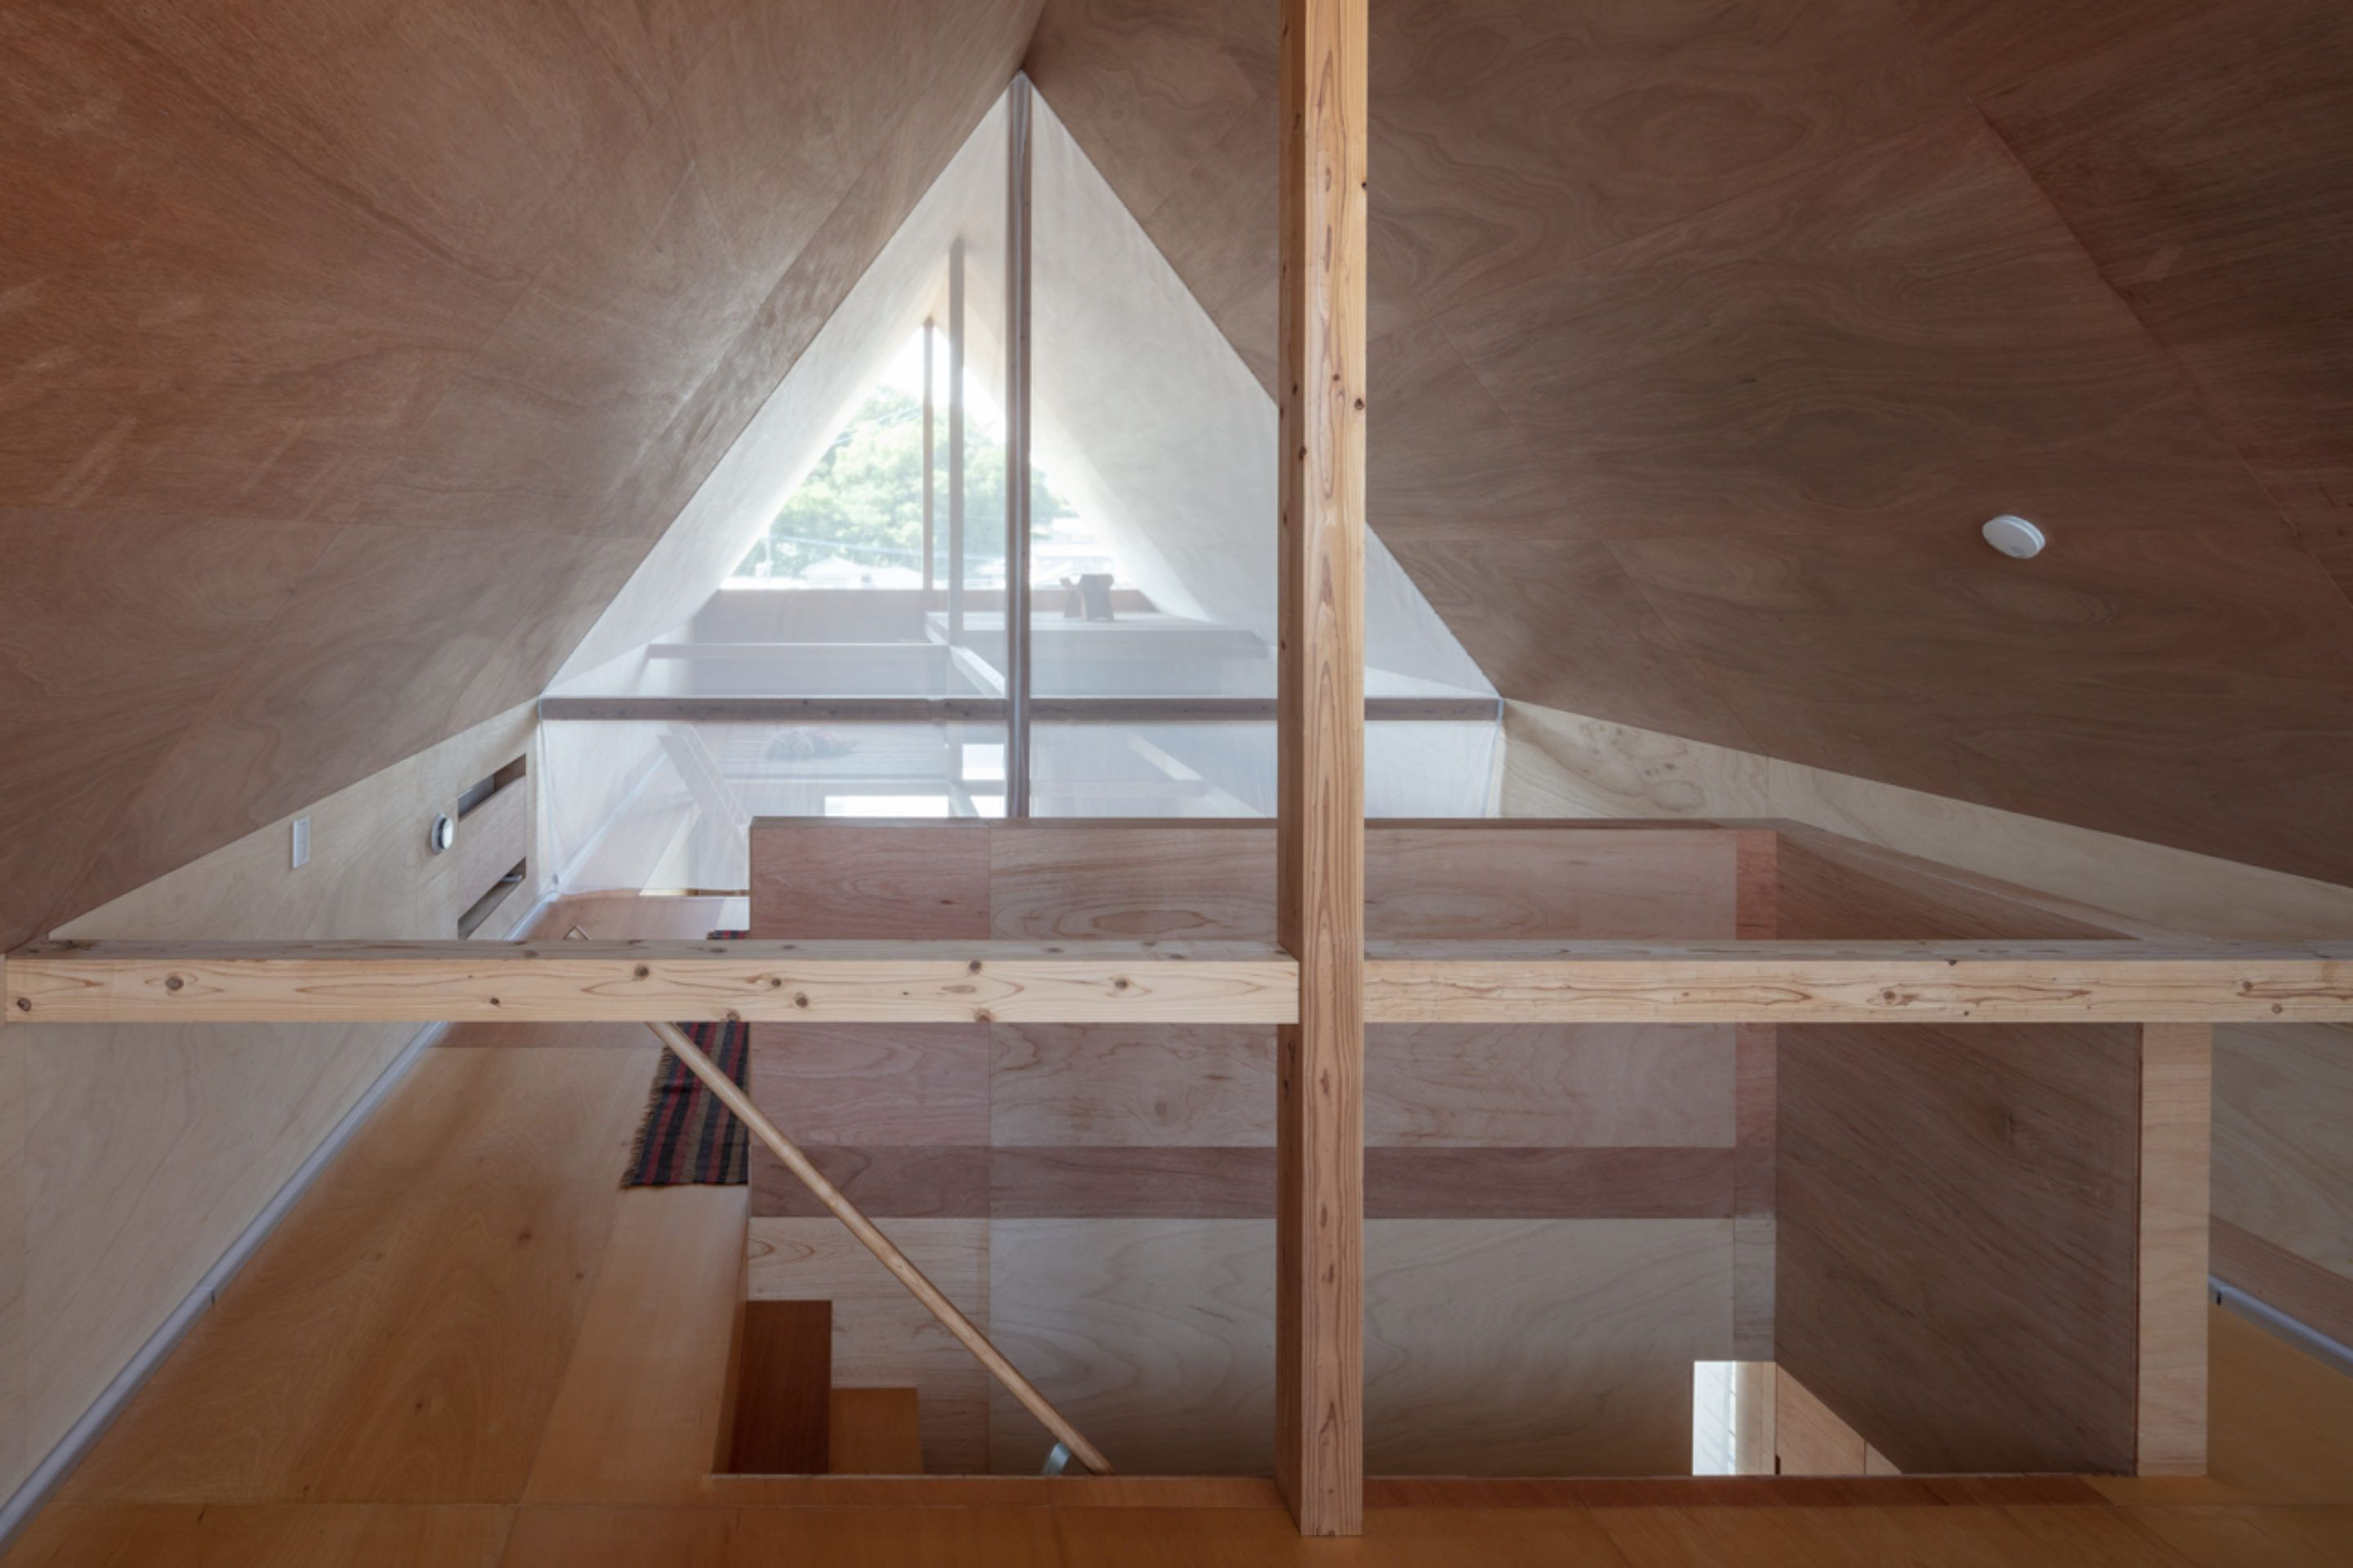 IGNANT-Architecture-YN-Architects-Masumitsu-House-7